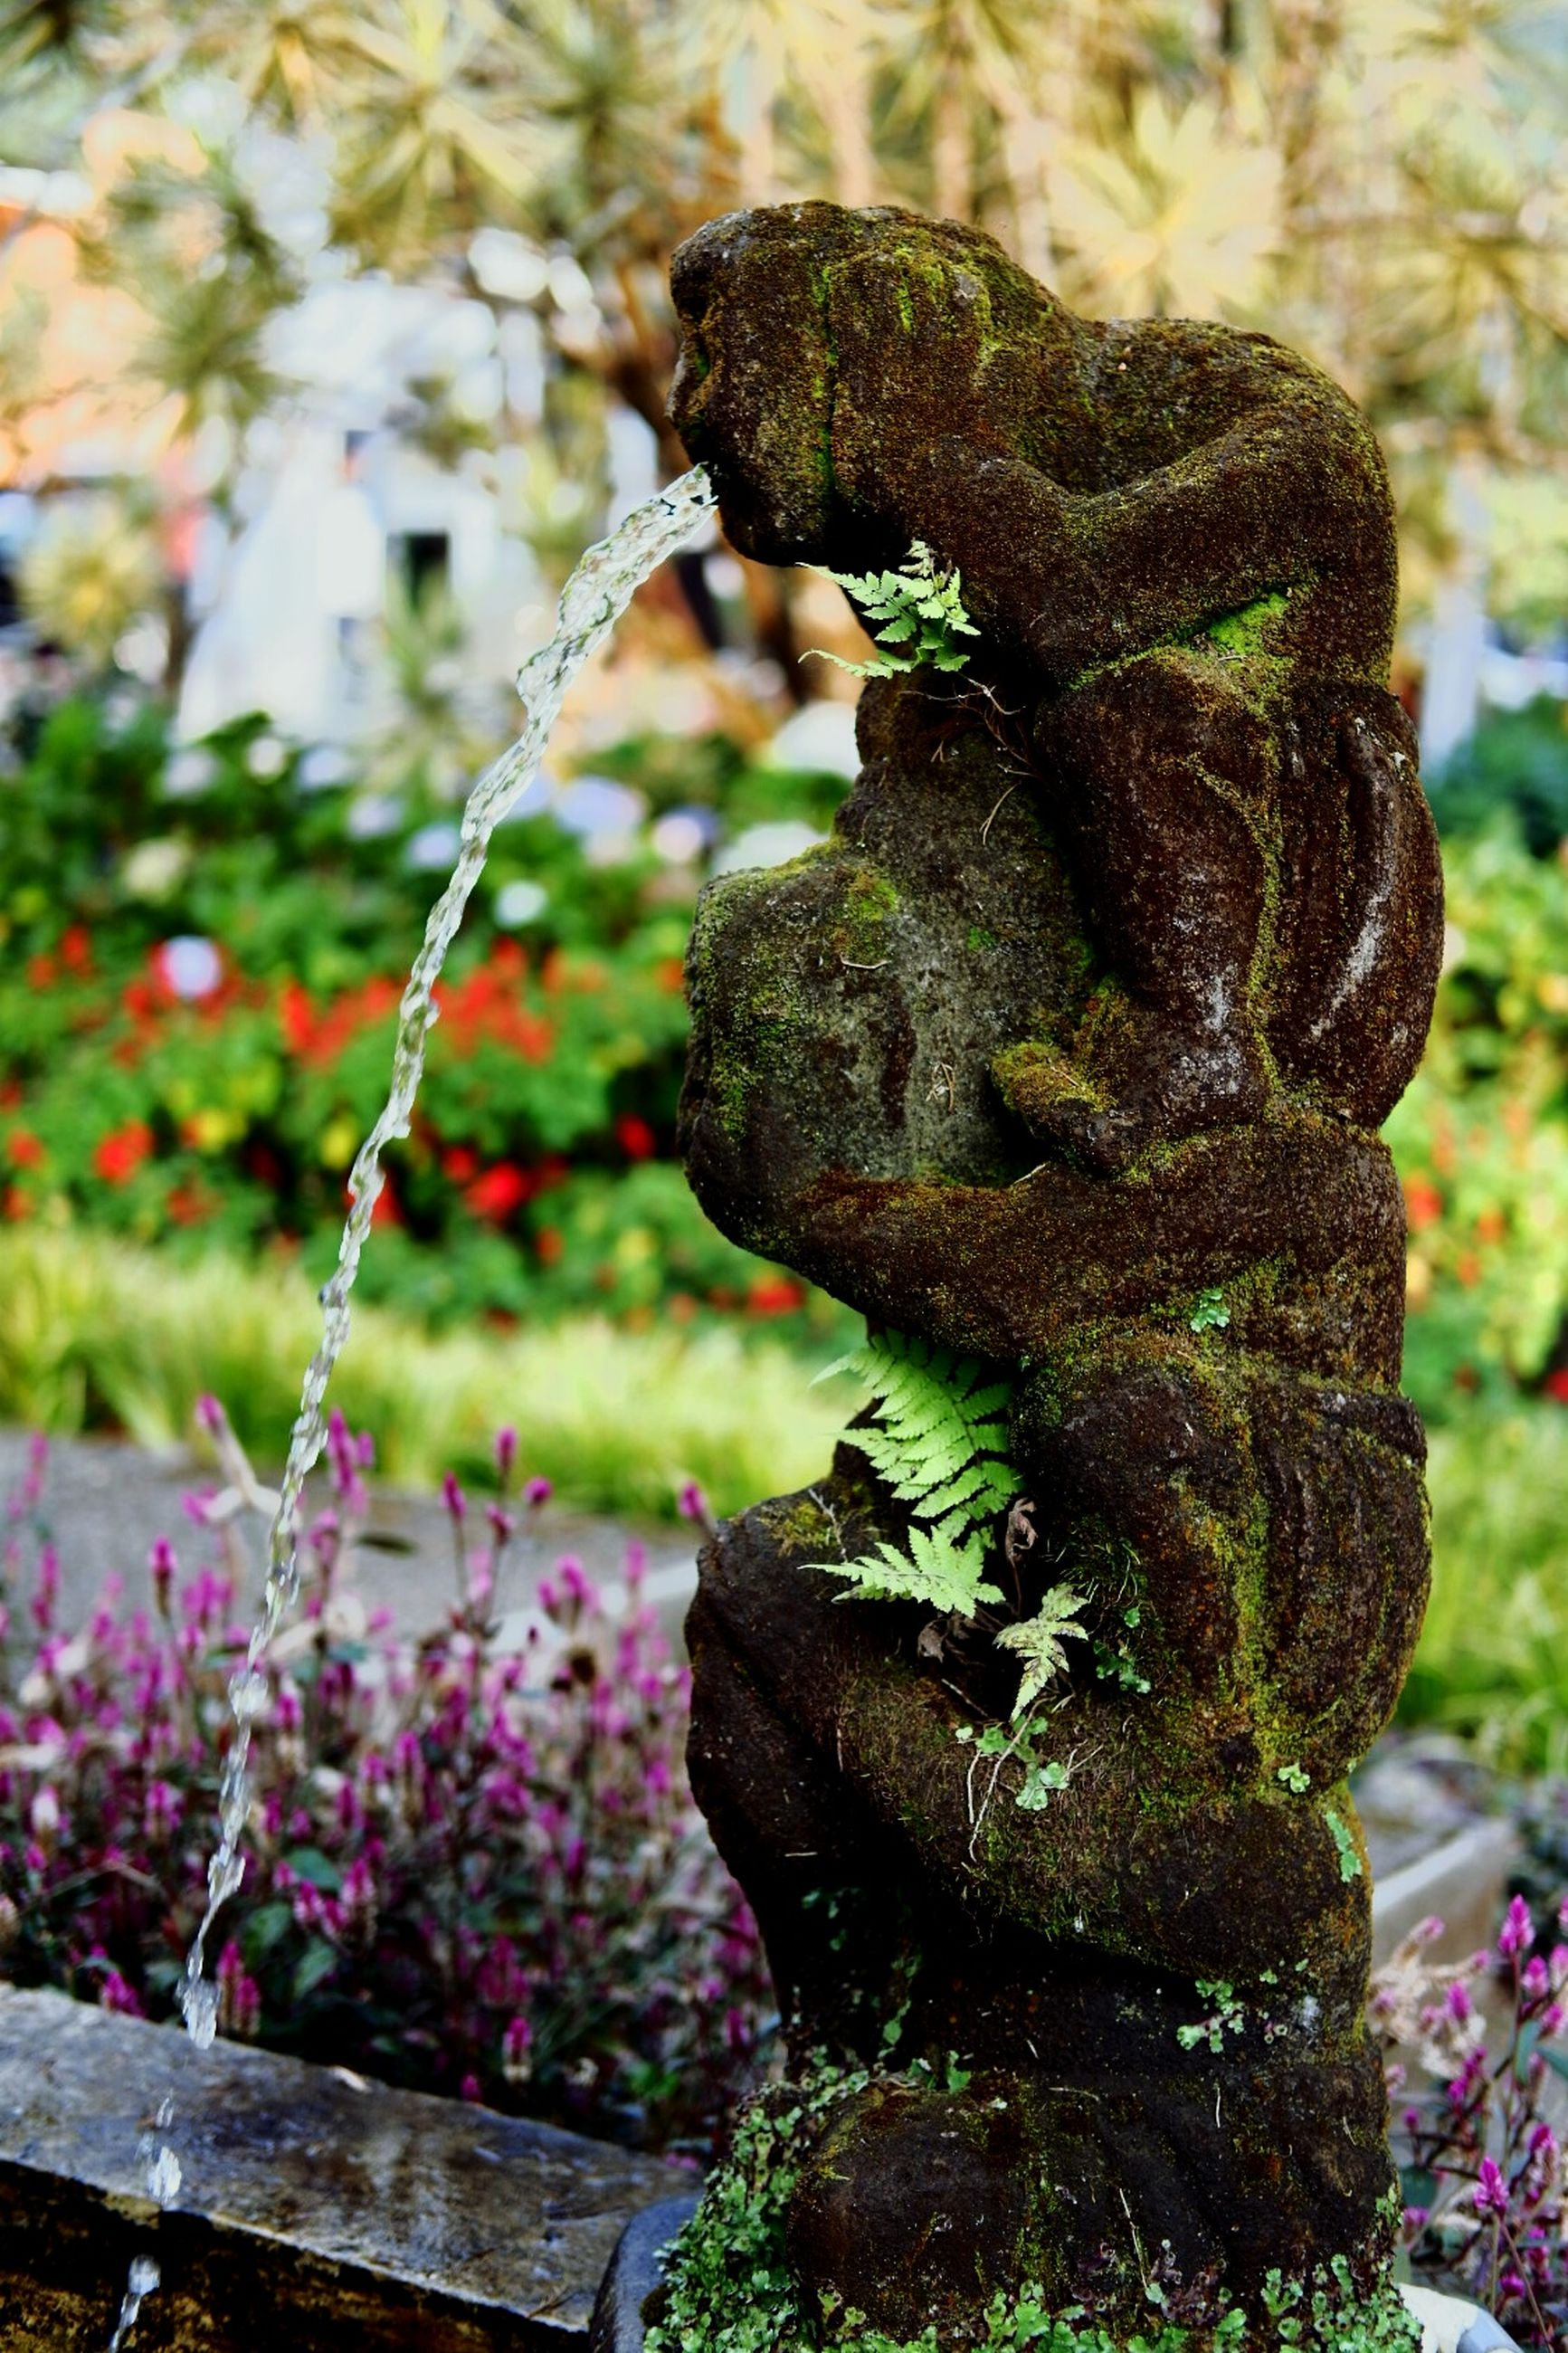 plant, focus on foreground, sculpture, representation, art and craft, no people, flowering plant, flower, day, nature, statue, close-up, human representation, garden, creativity, growth, formal garden, outdoors, craft, park